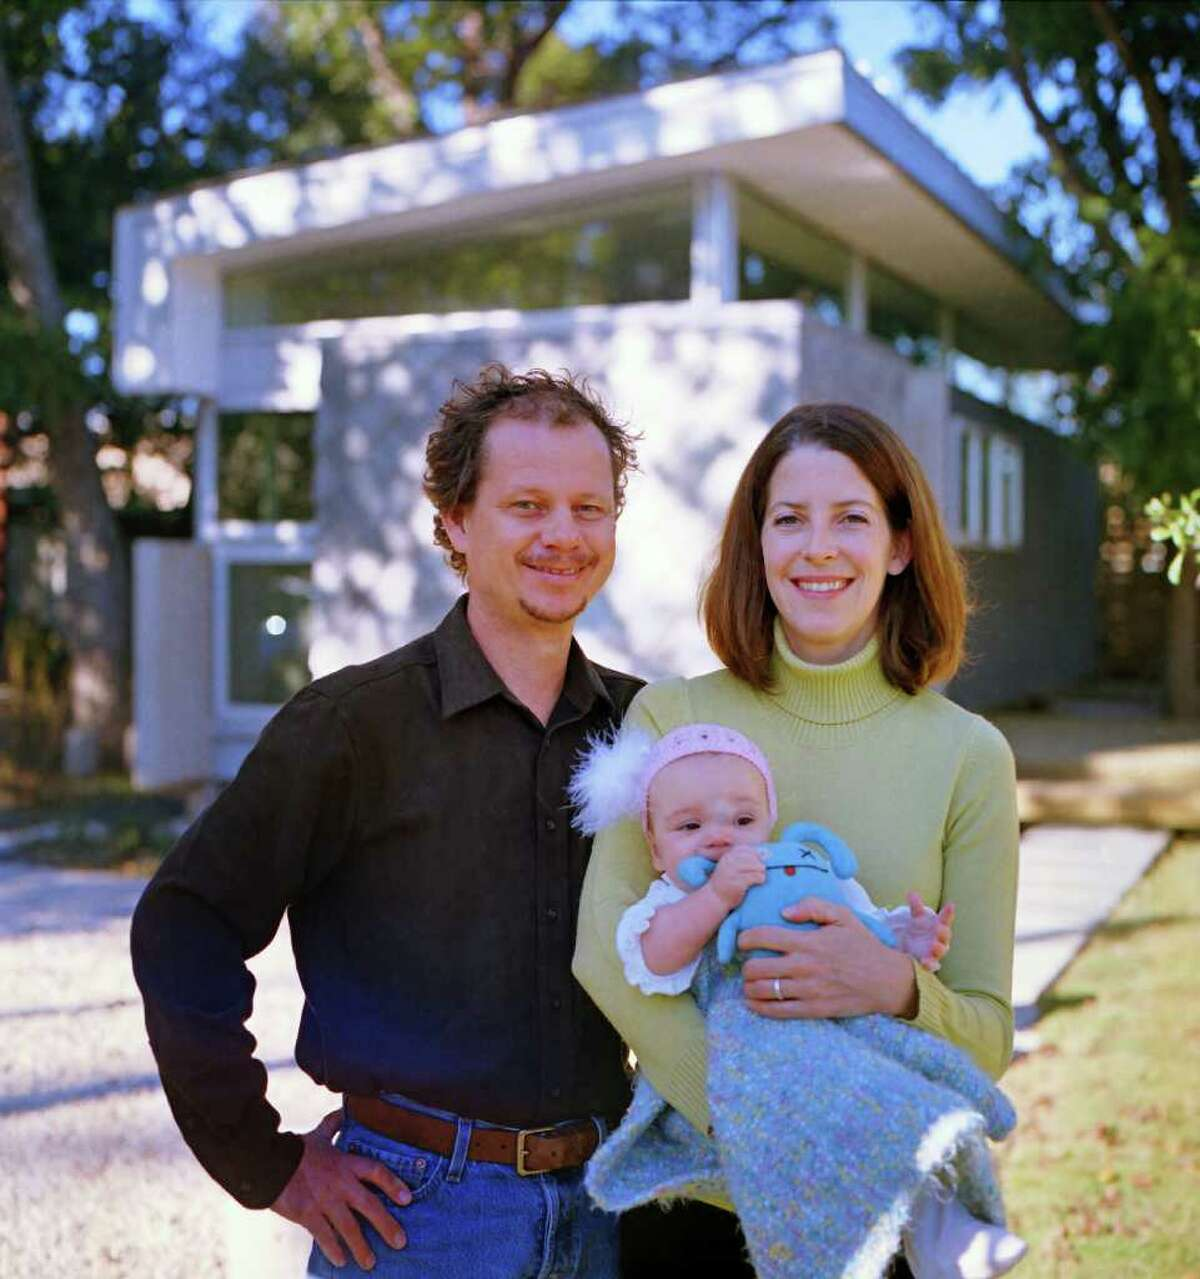 Mark Schatz and Anne Eamon, who now have a daughter, Wren, have been experimenting with ways to live well on a small scale for about 14 years.